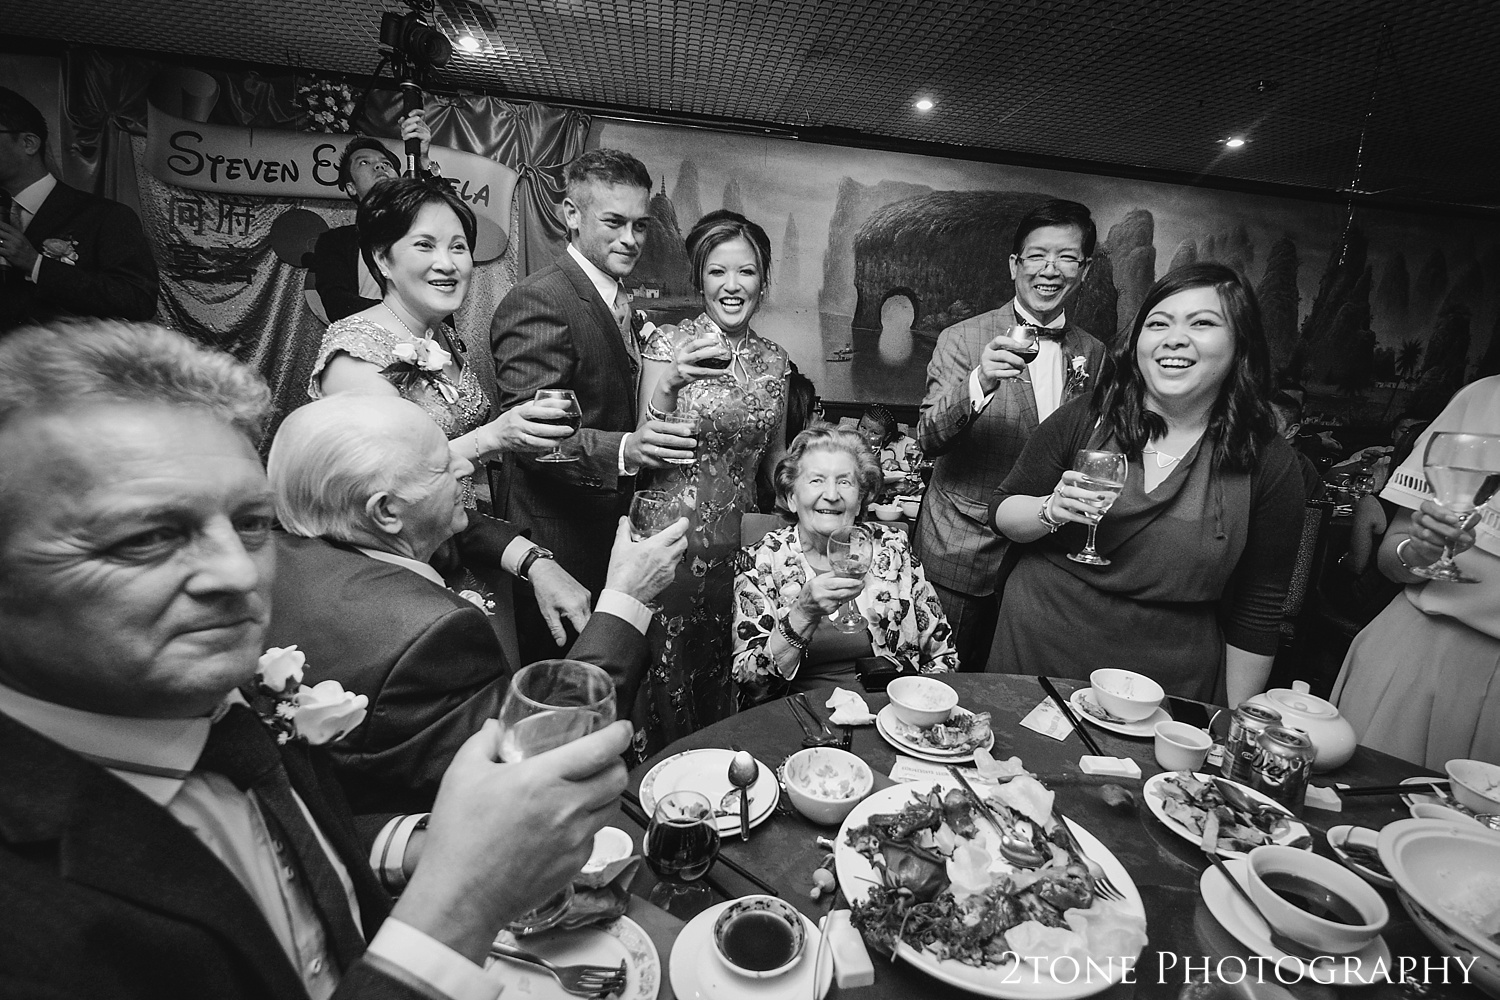 Chinese wedding banquet  by durham based husband and wife wedding photography duo 2tone Photography www.2tonephotography.co.uk